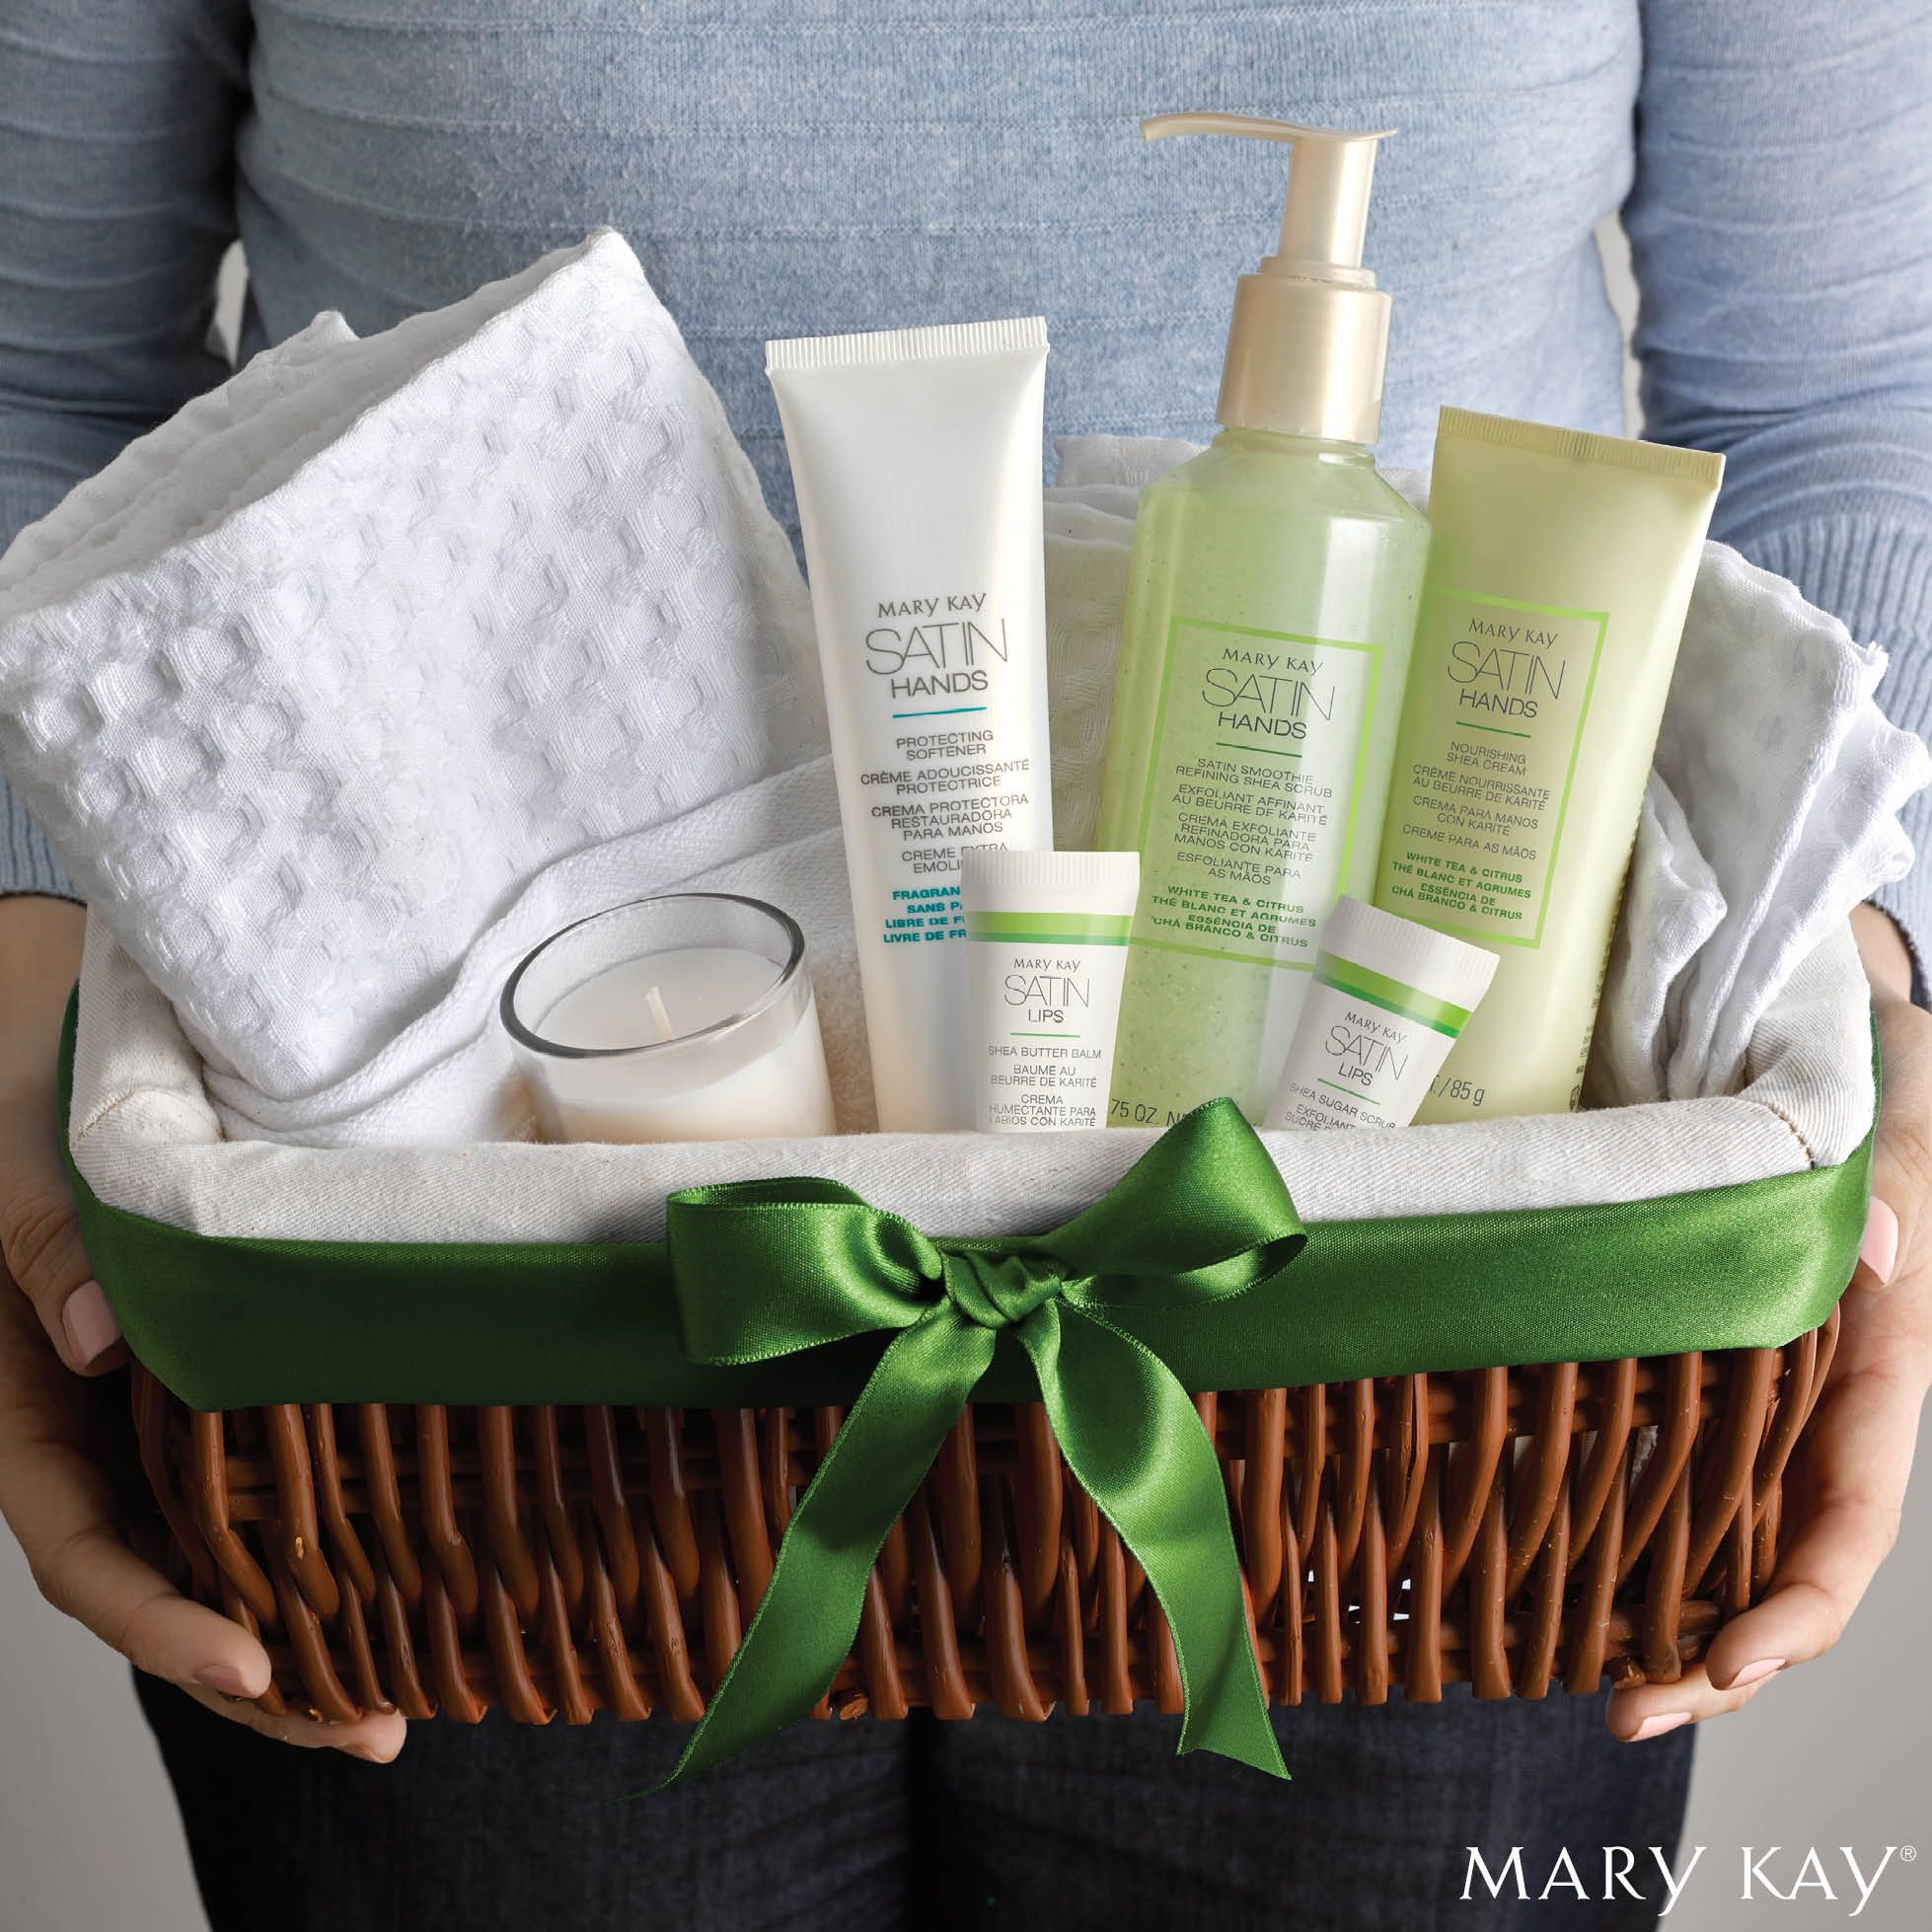 Give the gift of soft and supple hands this holiday season